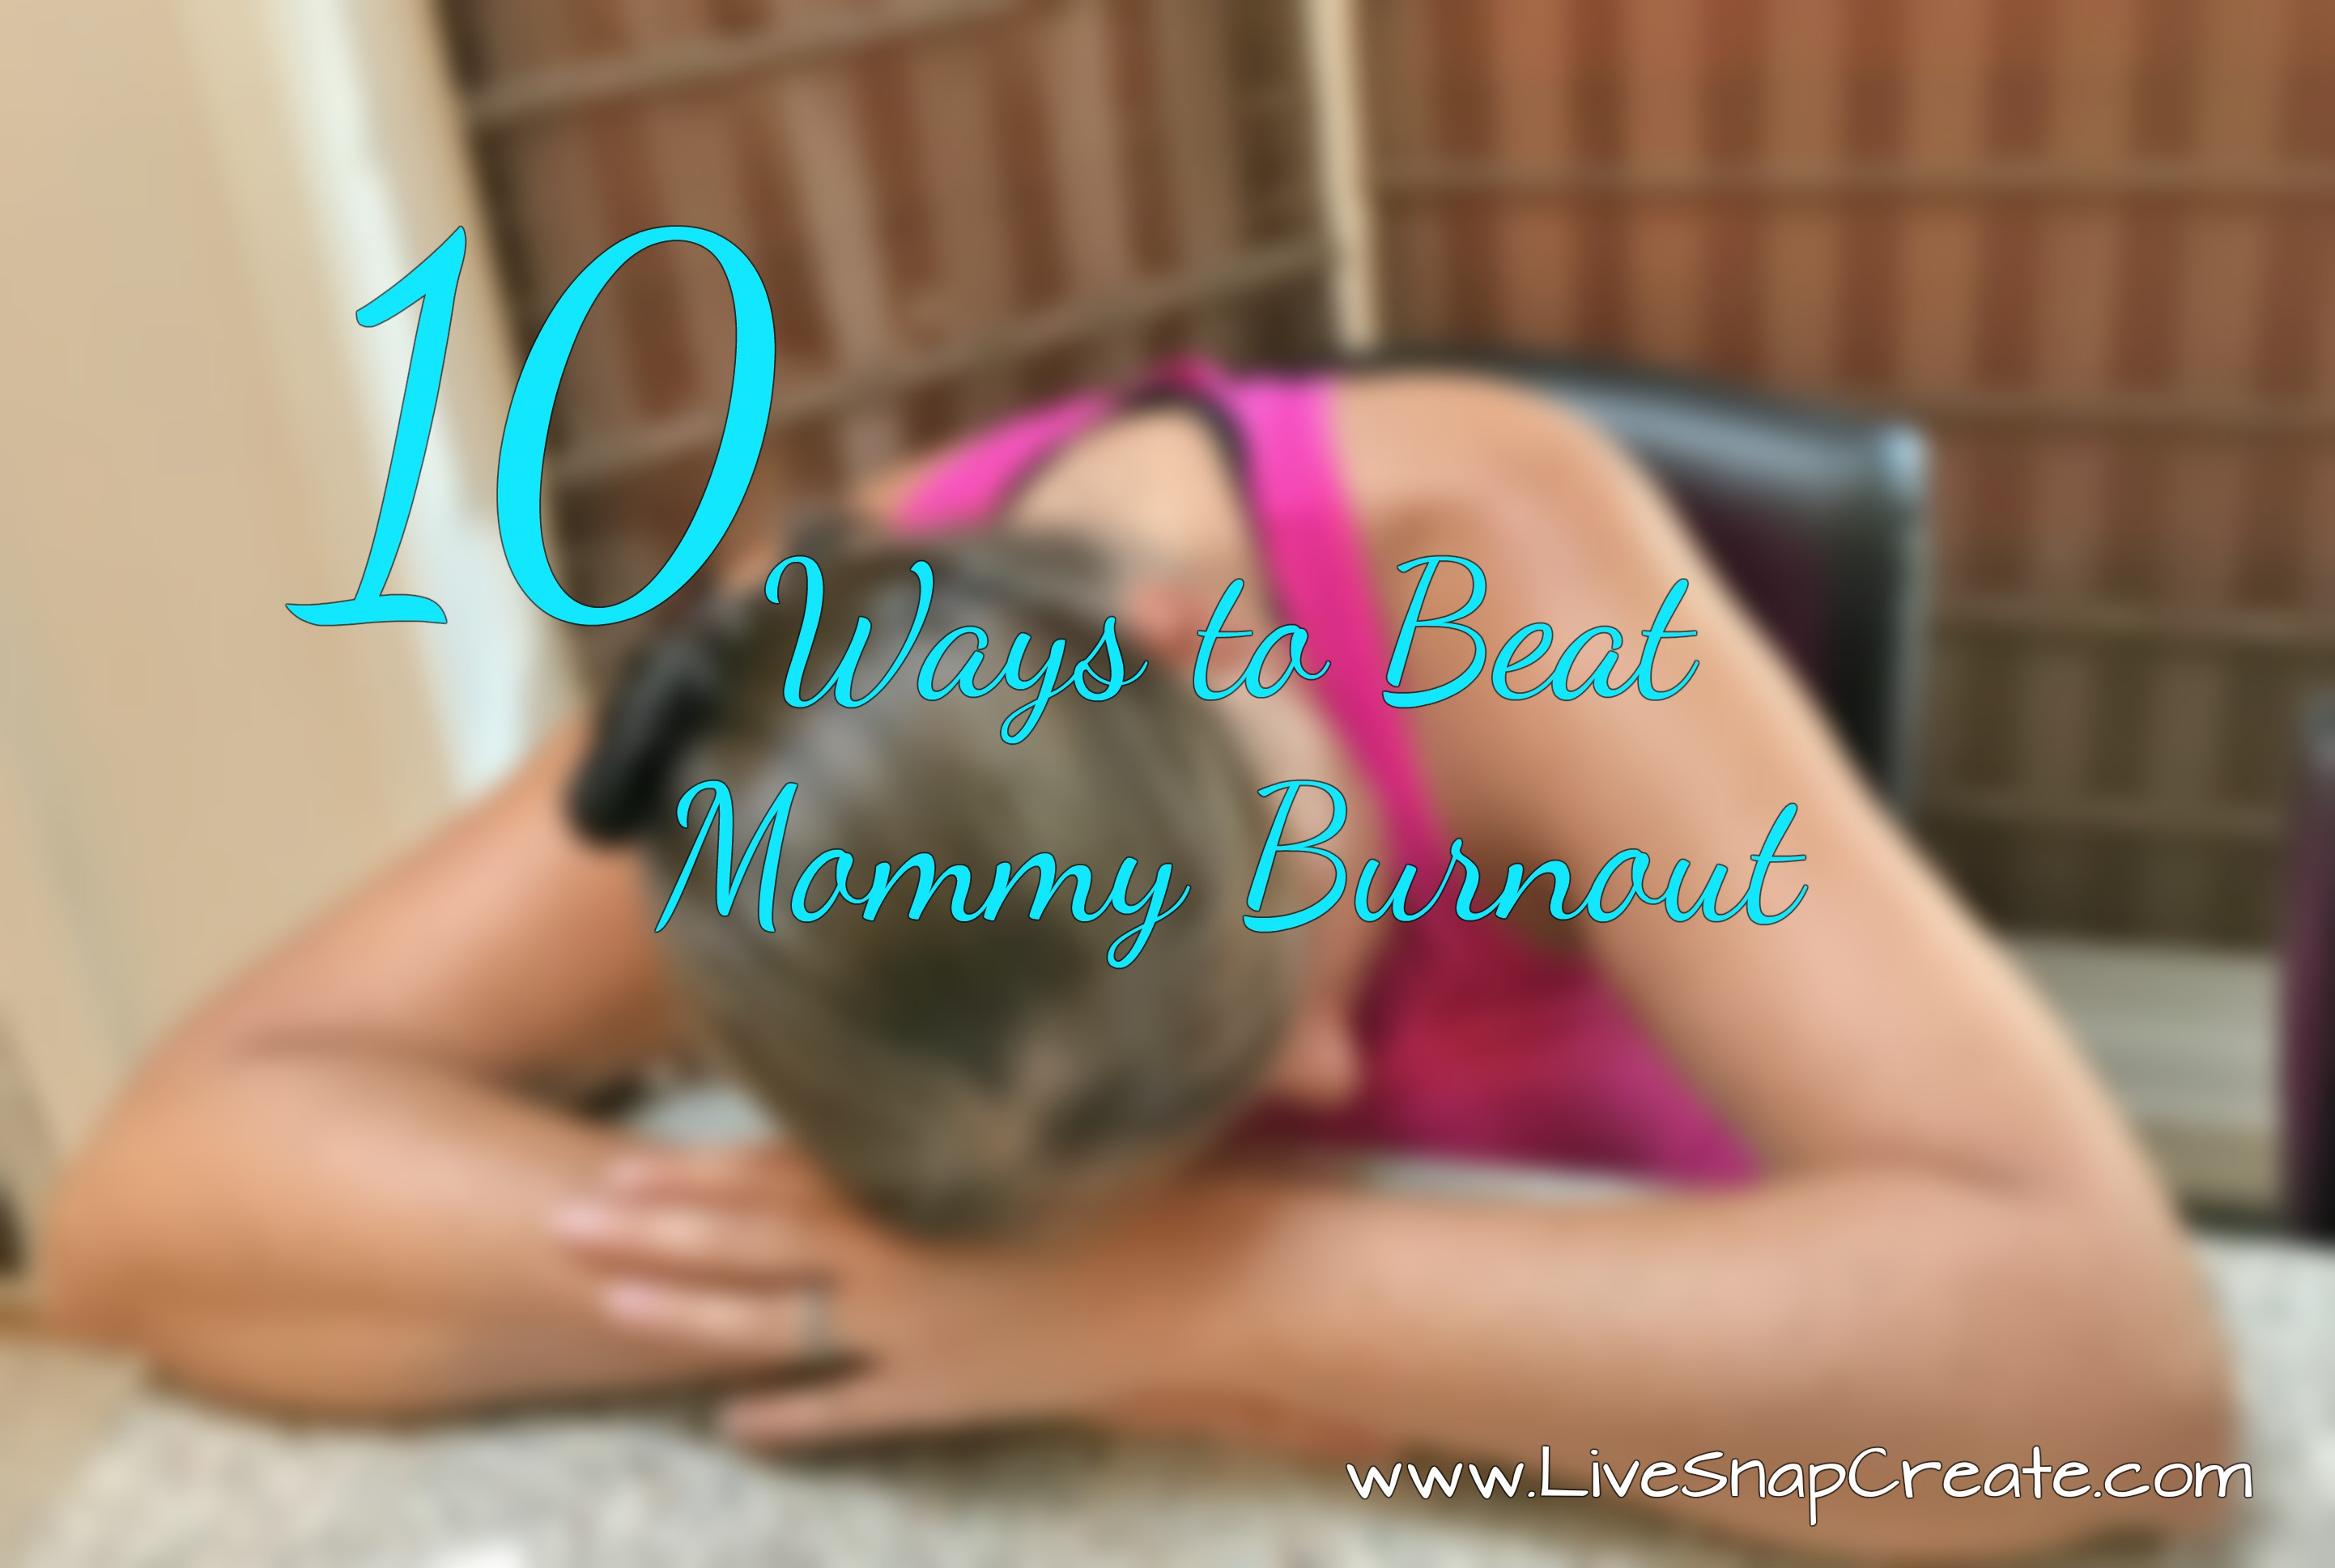 10 Ways to Beat Mommy Burnout